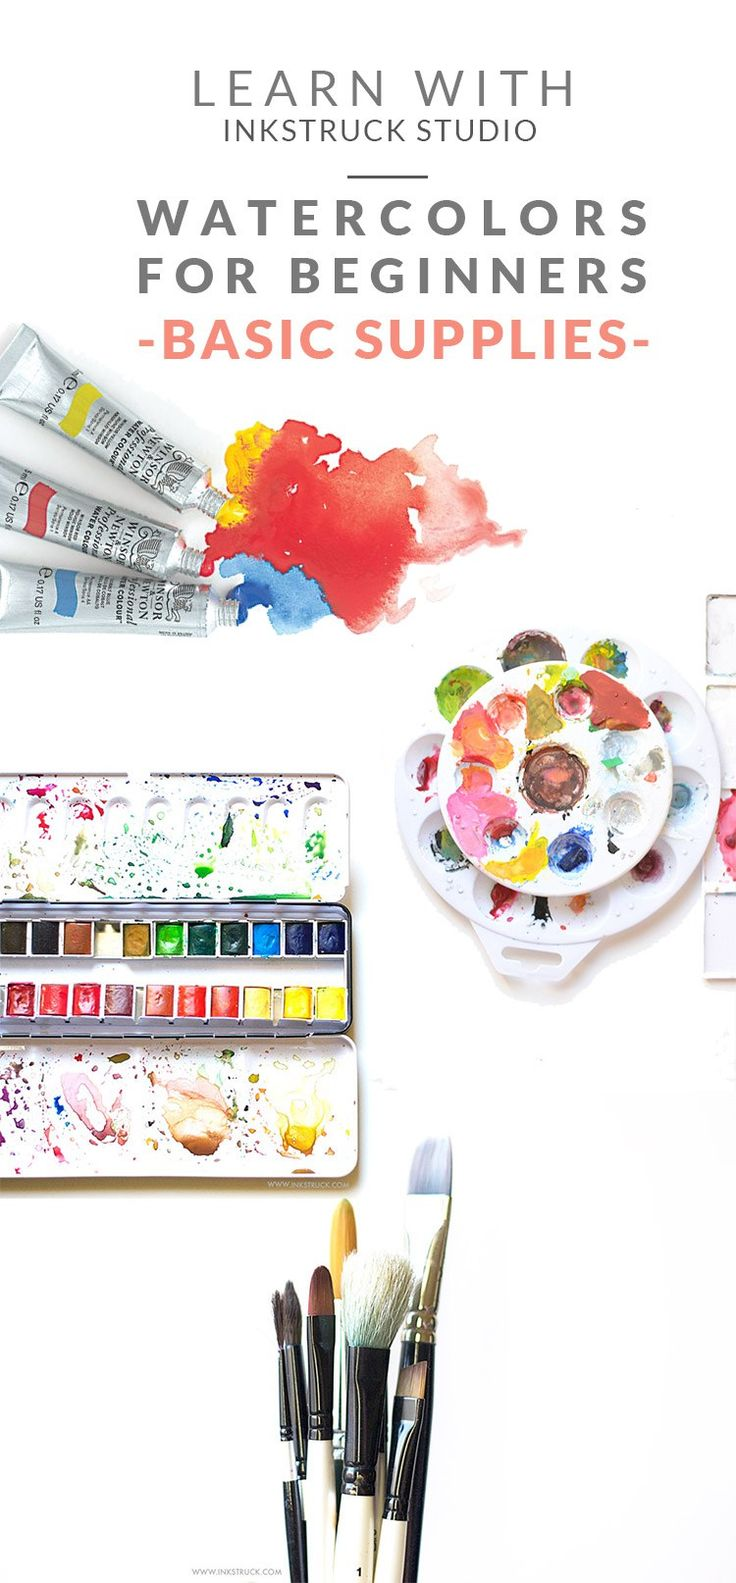 Watercolor books for beginners - Watercolors For Beginners Basic Supplies